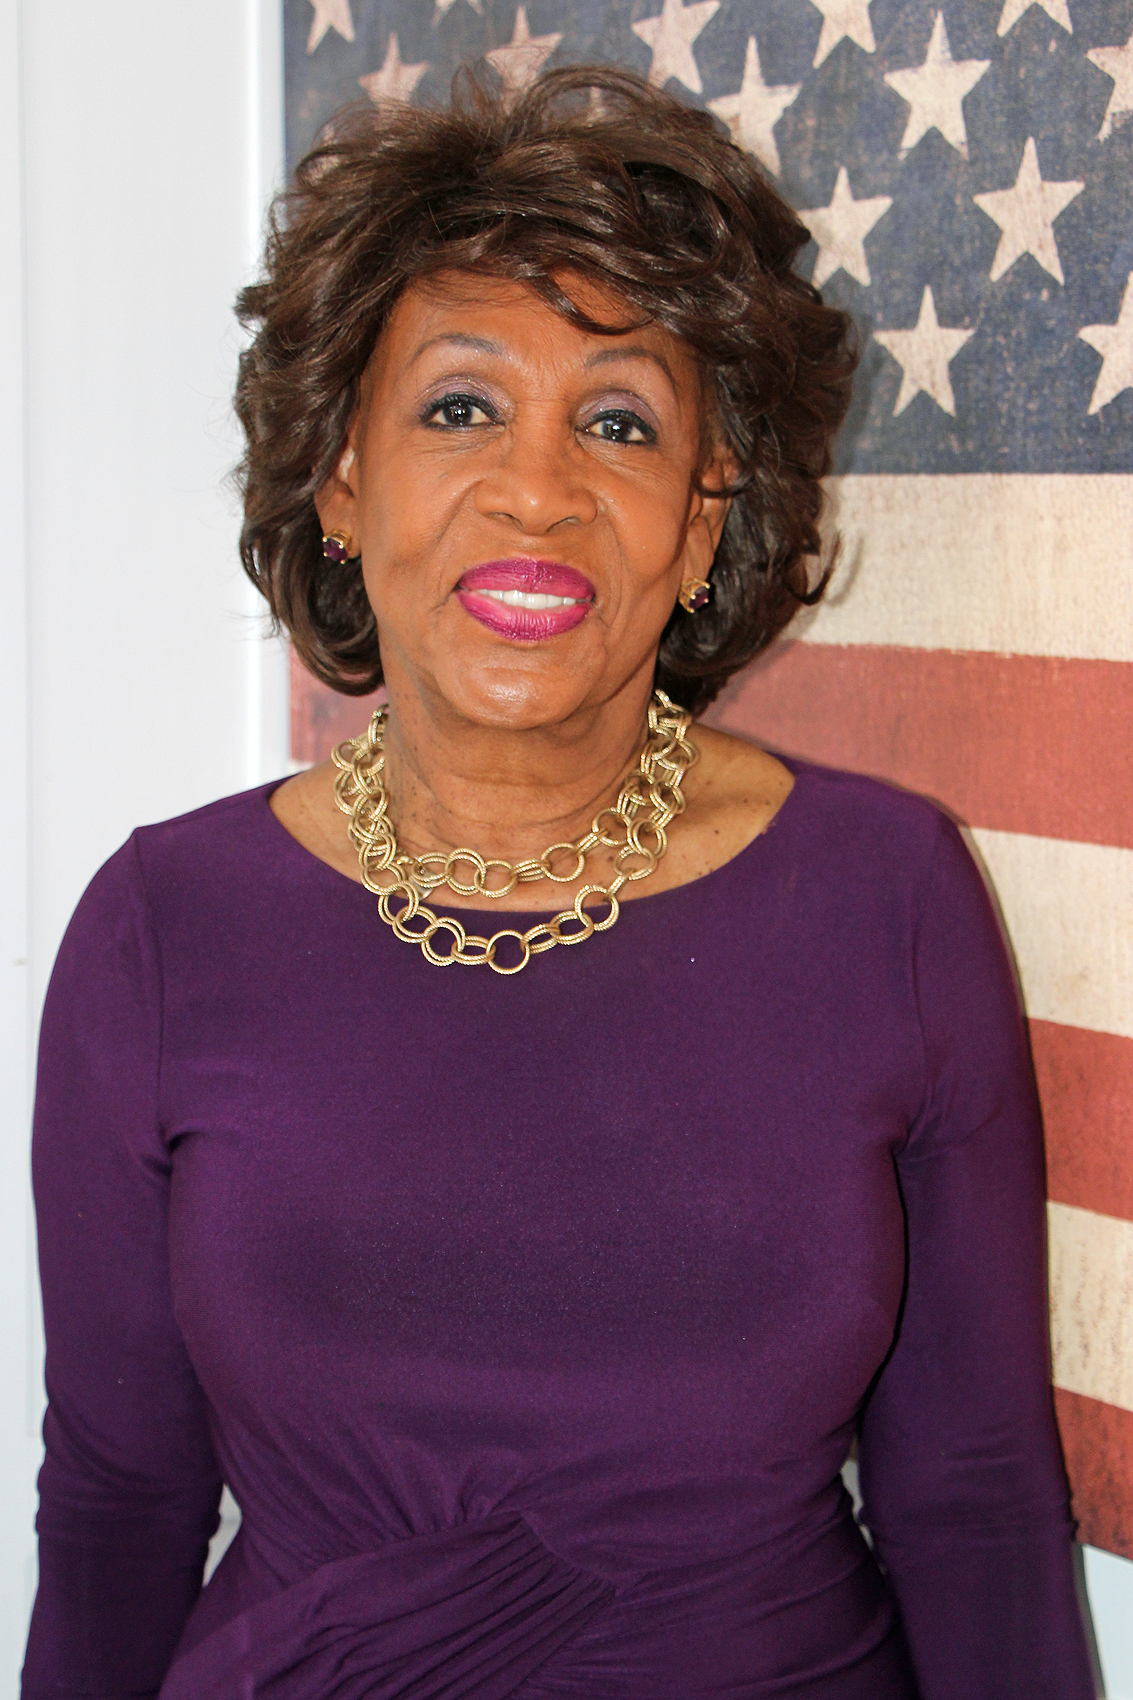 Maxine Waters Warns Trump 'Even Your Most Vocal Defenders Will Turn On Your Shutdown'